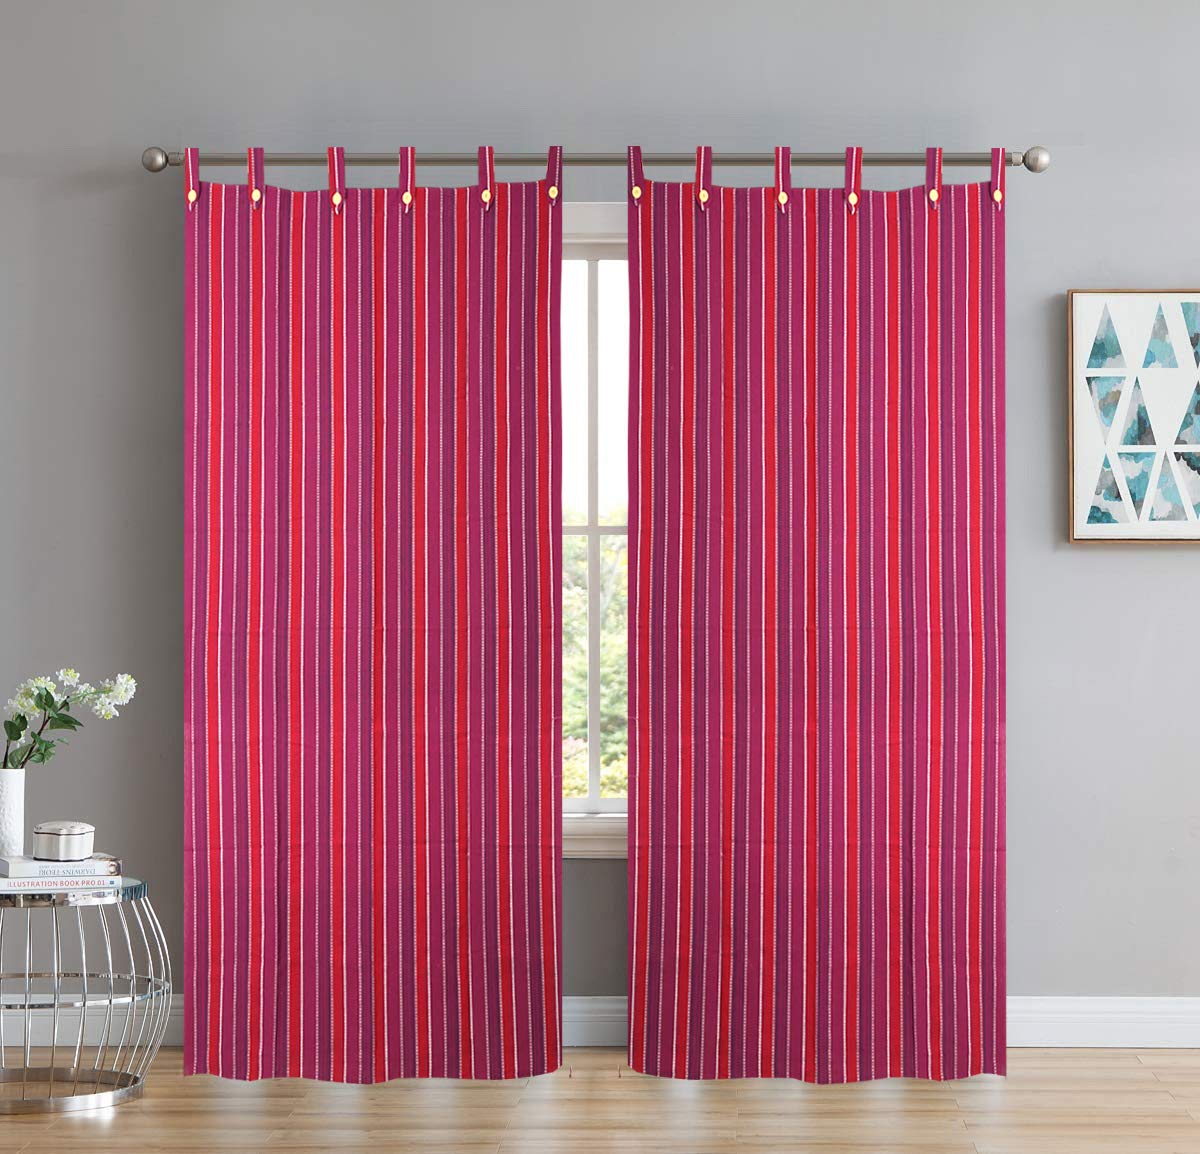 Colourful cotton curtain